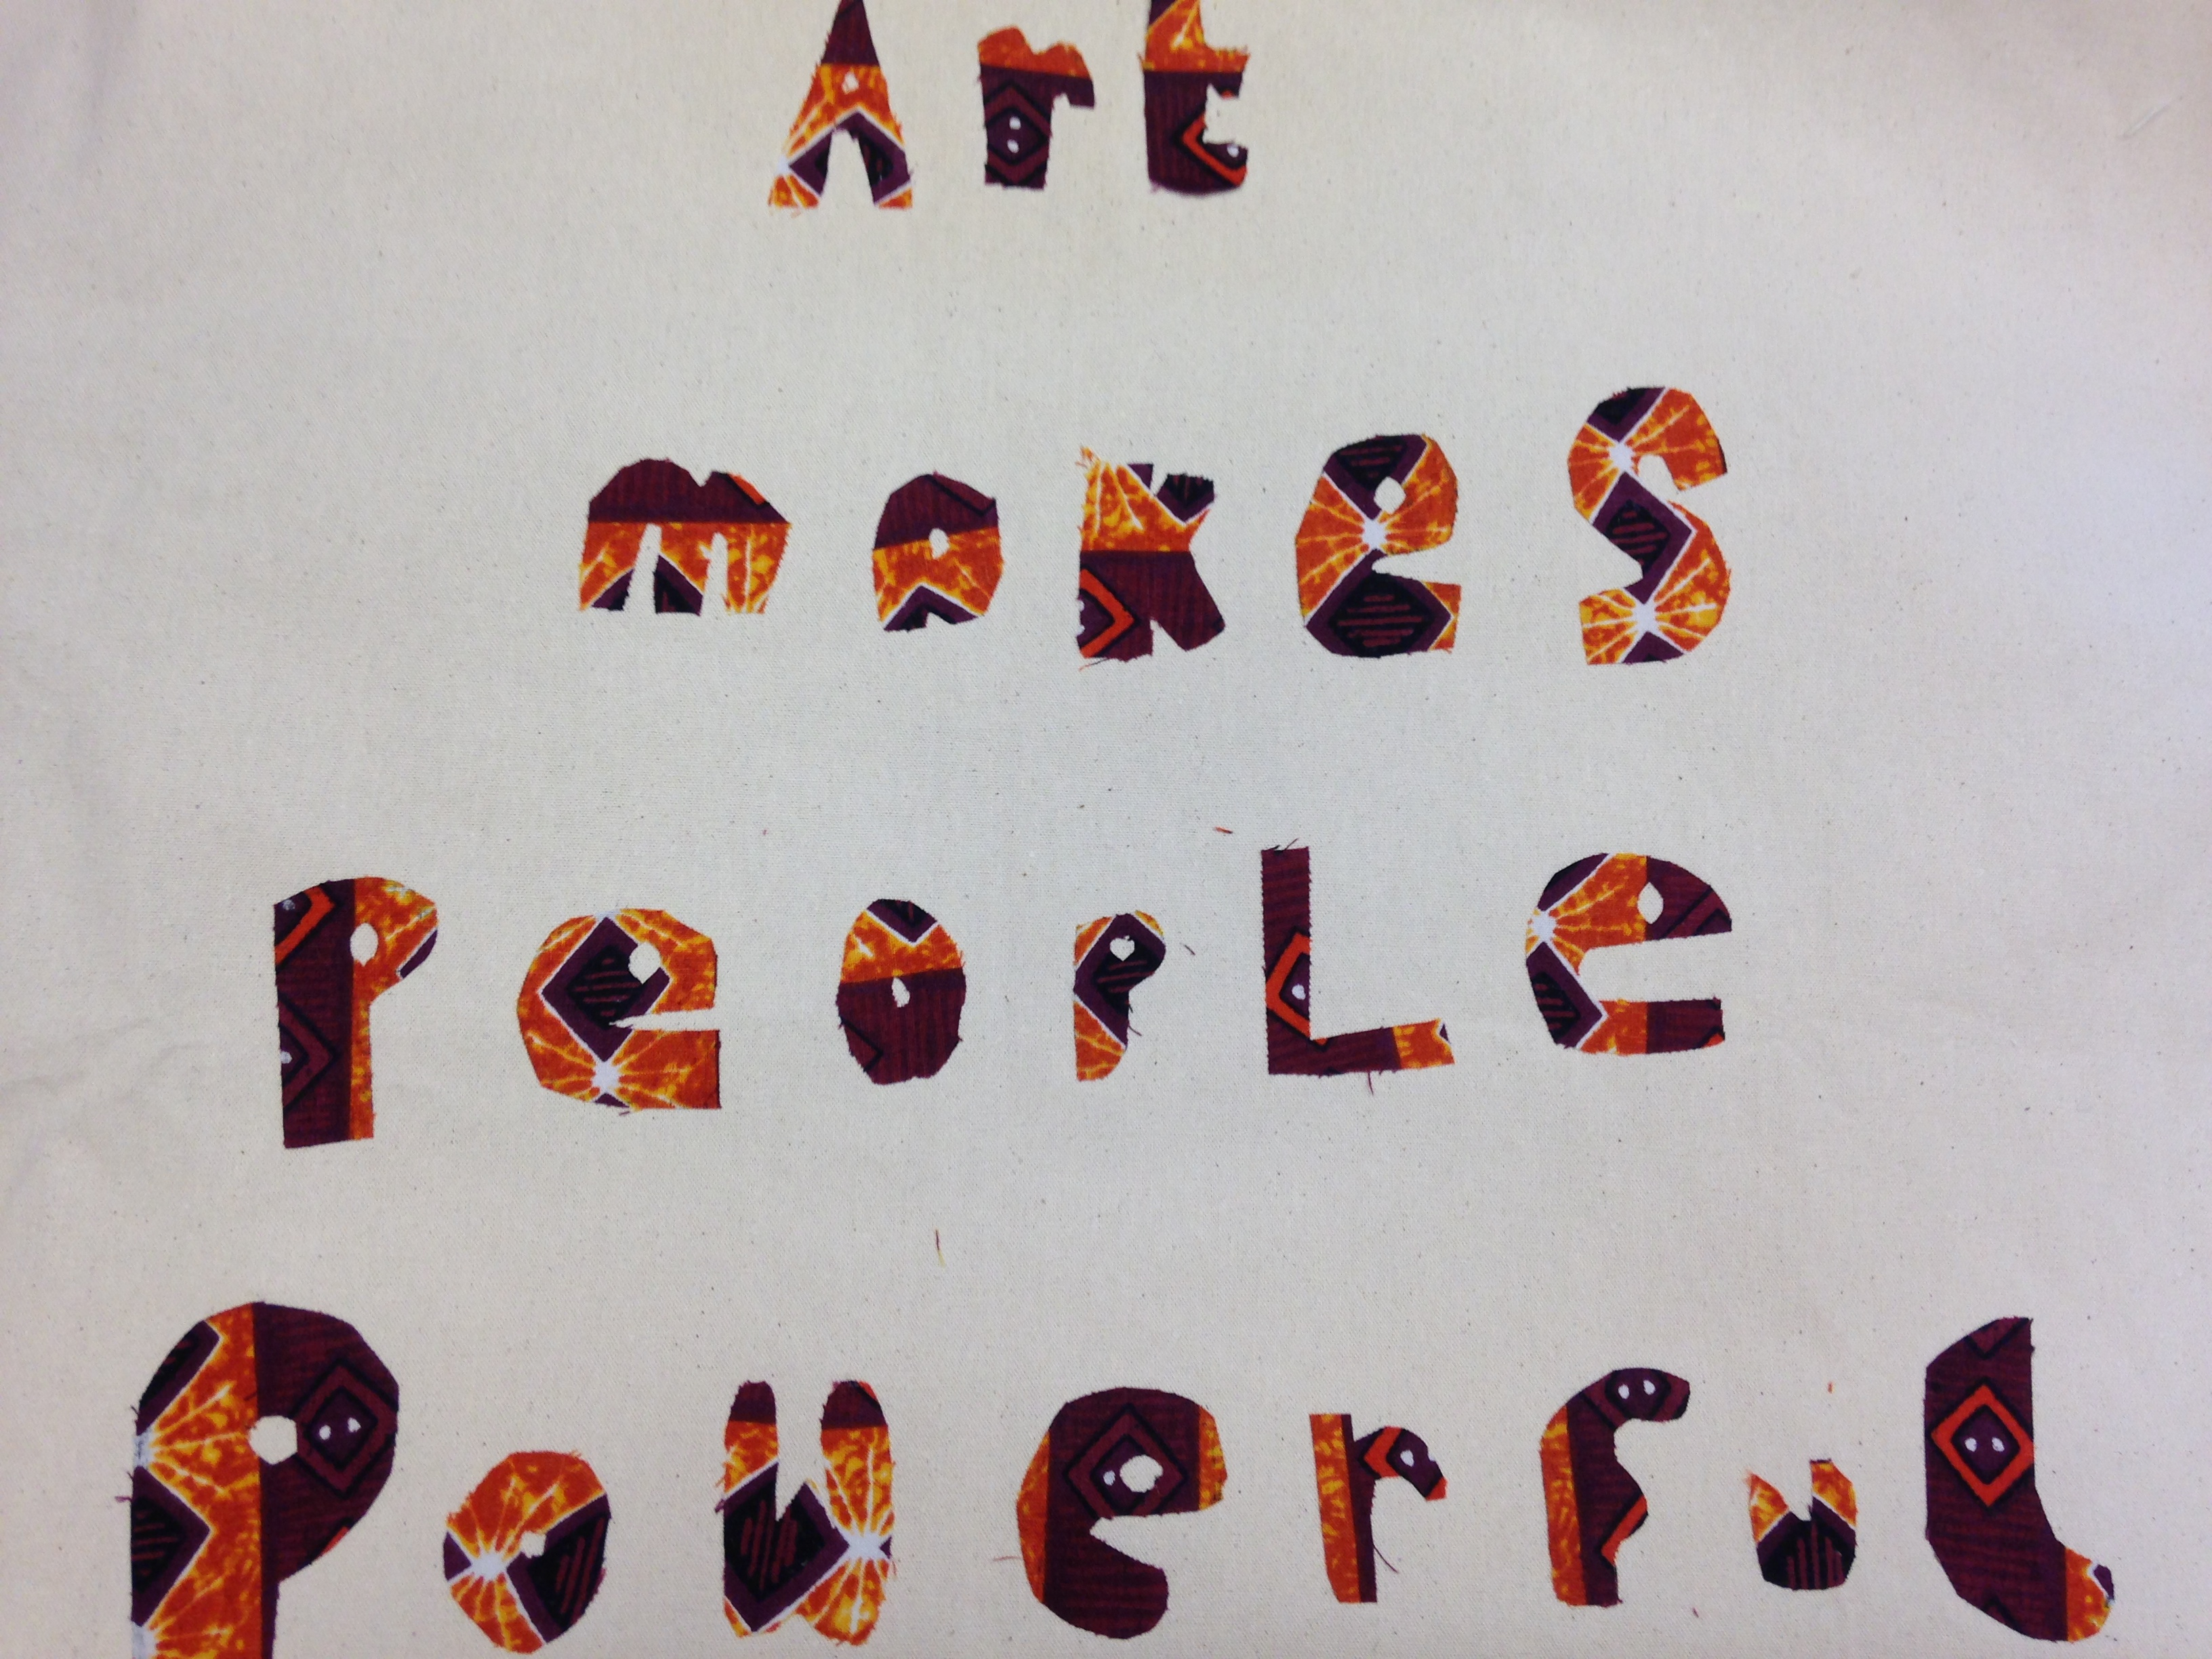 applique work saying 'Art makes people powerful'